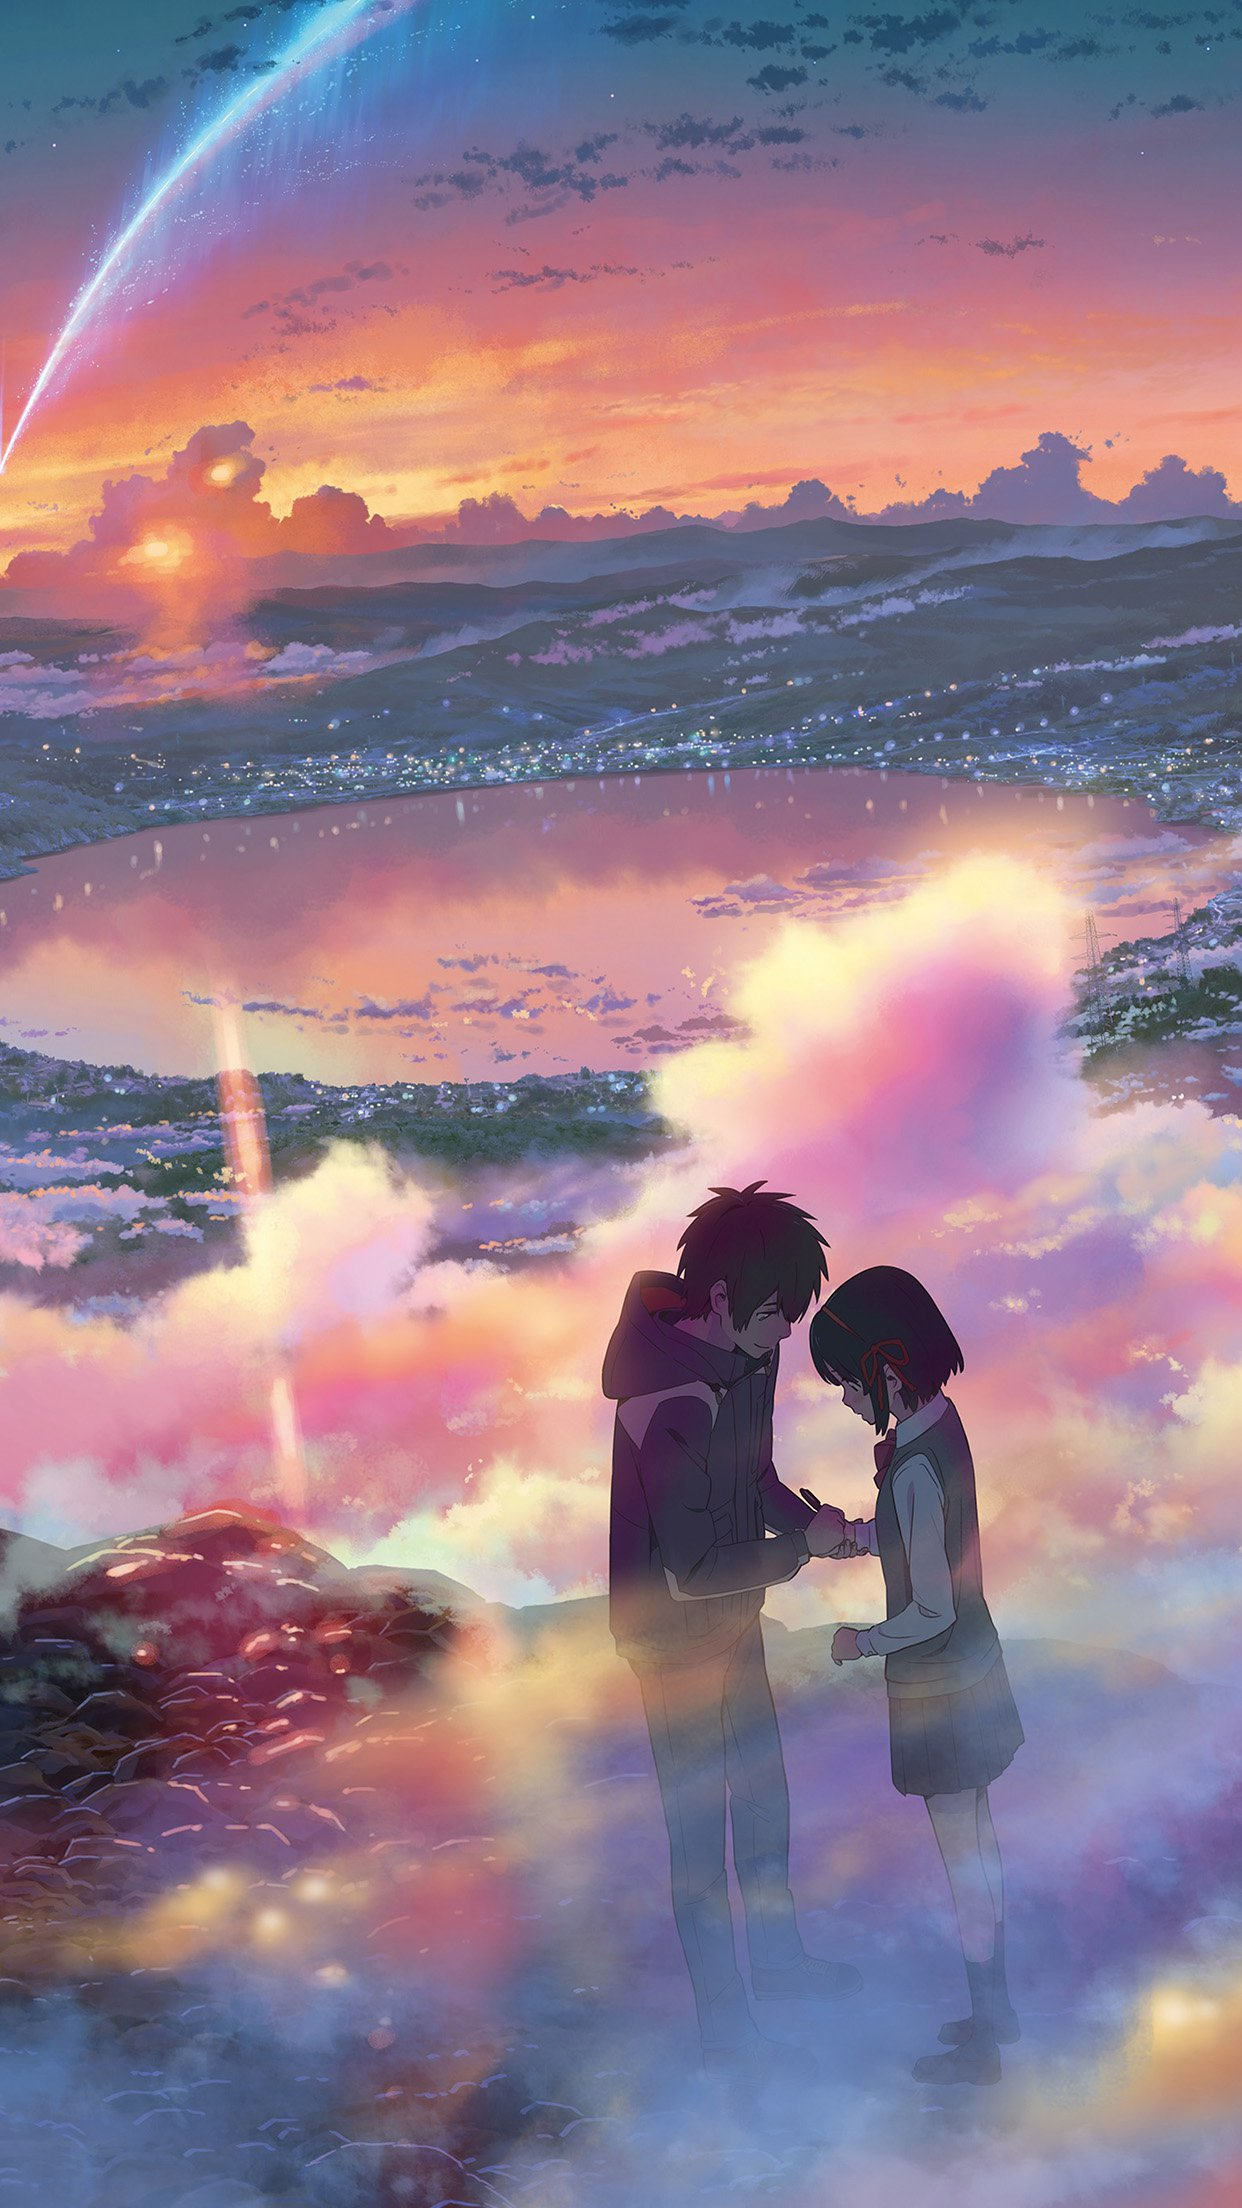 Yourname anime art night cute kimi no na wa android - Download anime wallpaper hd for android ...